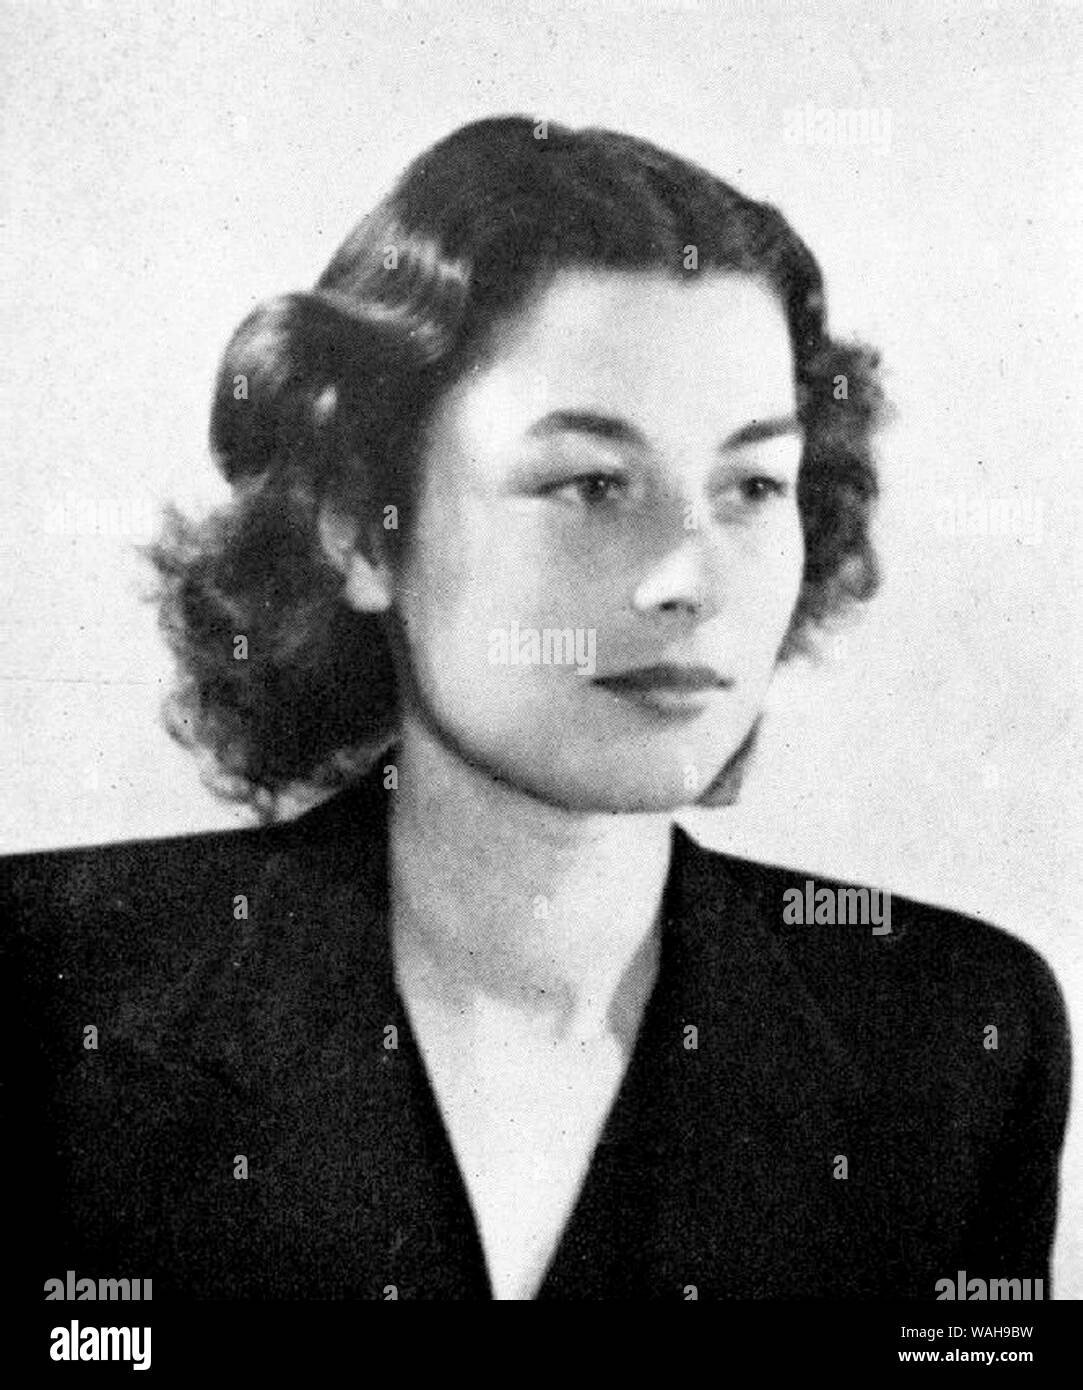 Violette Reine Elizabeth Szabo GC (1921 – 1945) French/British Special Operations Executive (SOE) agent during the Second World War and a posthumous recipient of the George Cross Stock Photo